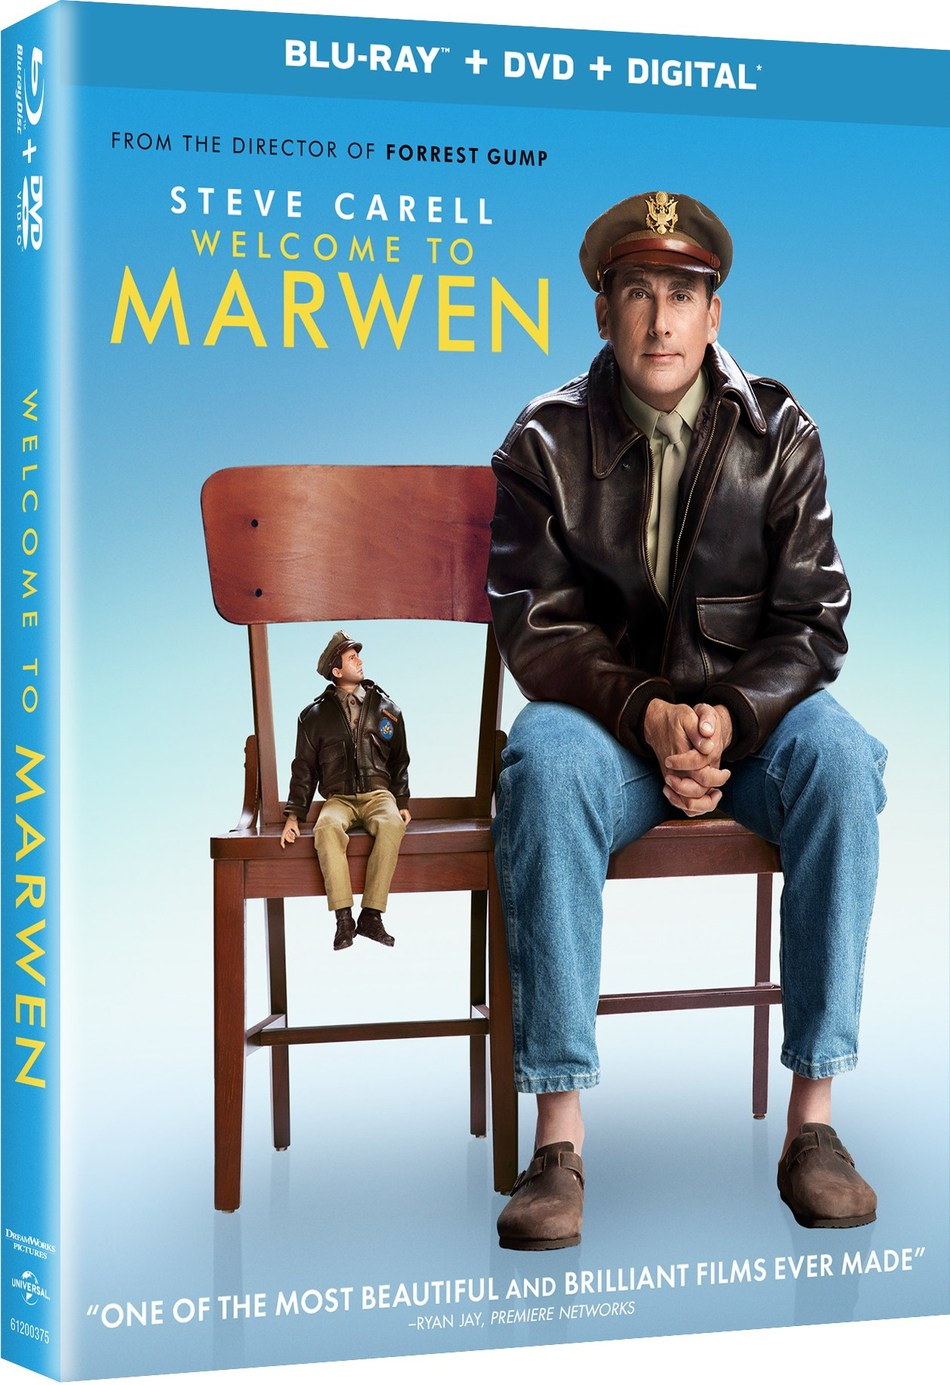 From Universal Pictures Home Entertainment: Welcome to Marwen